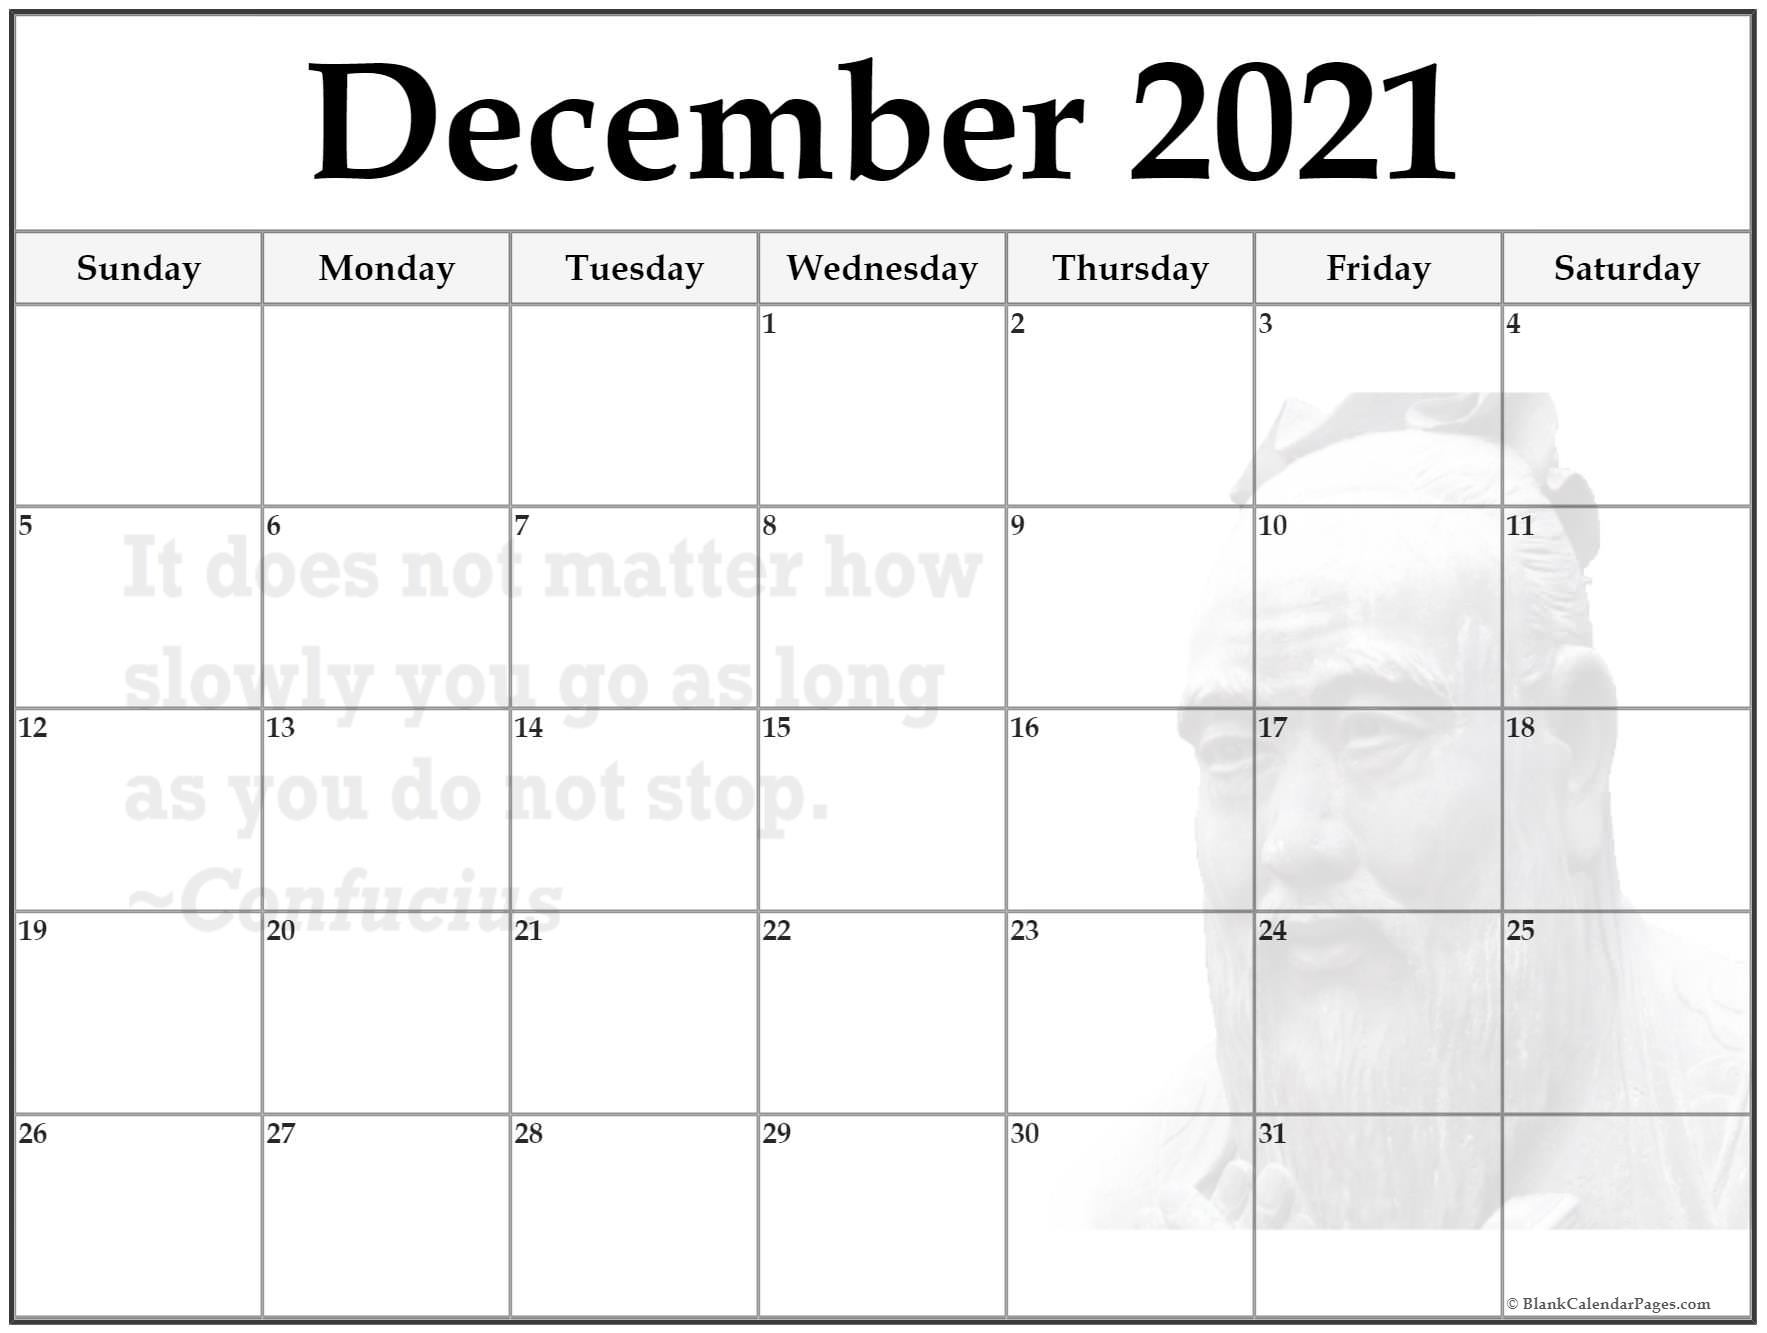 December 2019 monthly calendar template. It does not matter how slowly you go as long as you don't stop ~Confucius